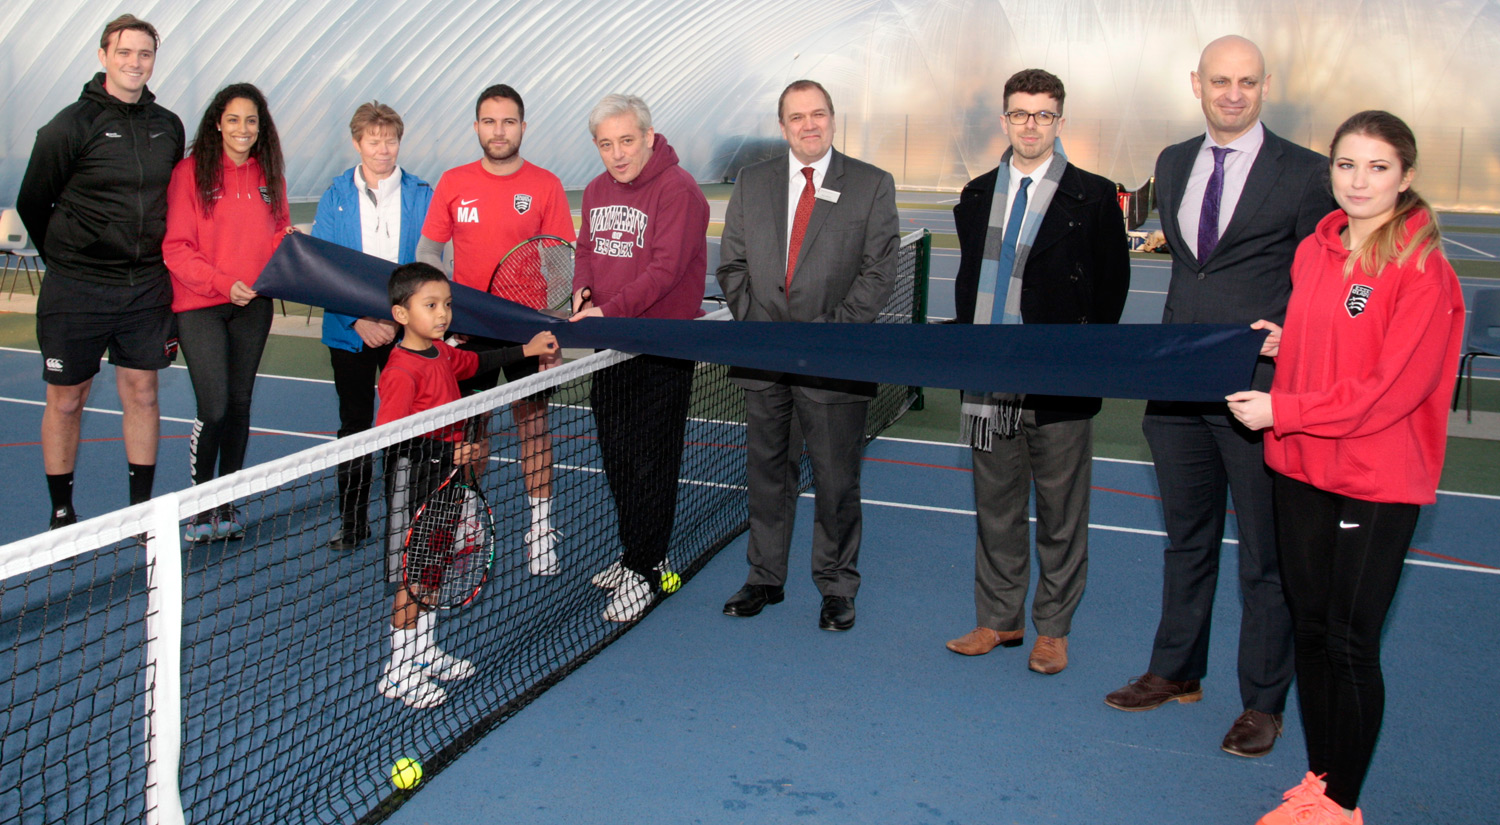 Opening our new tennis dome